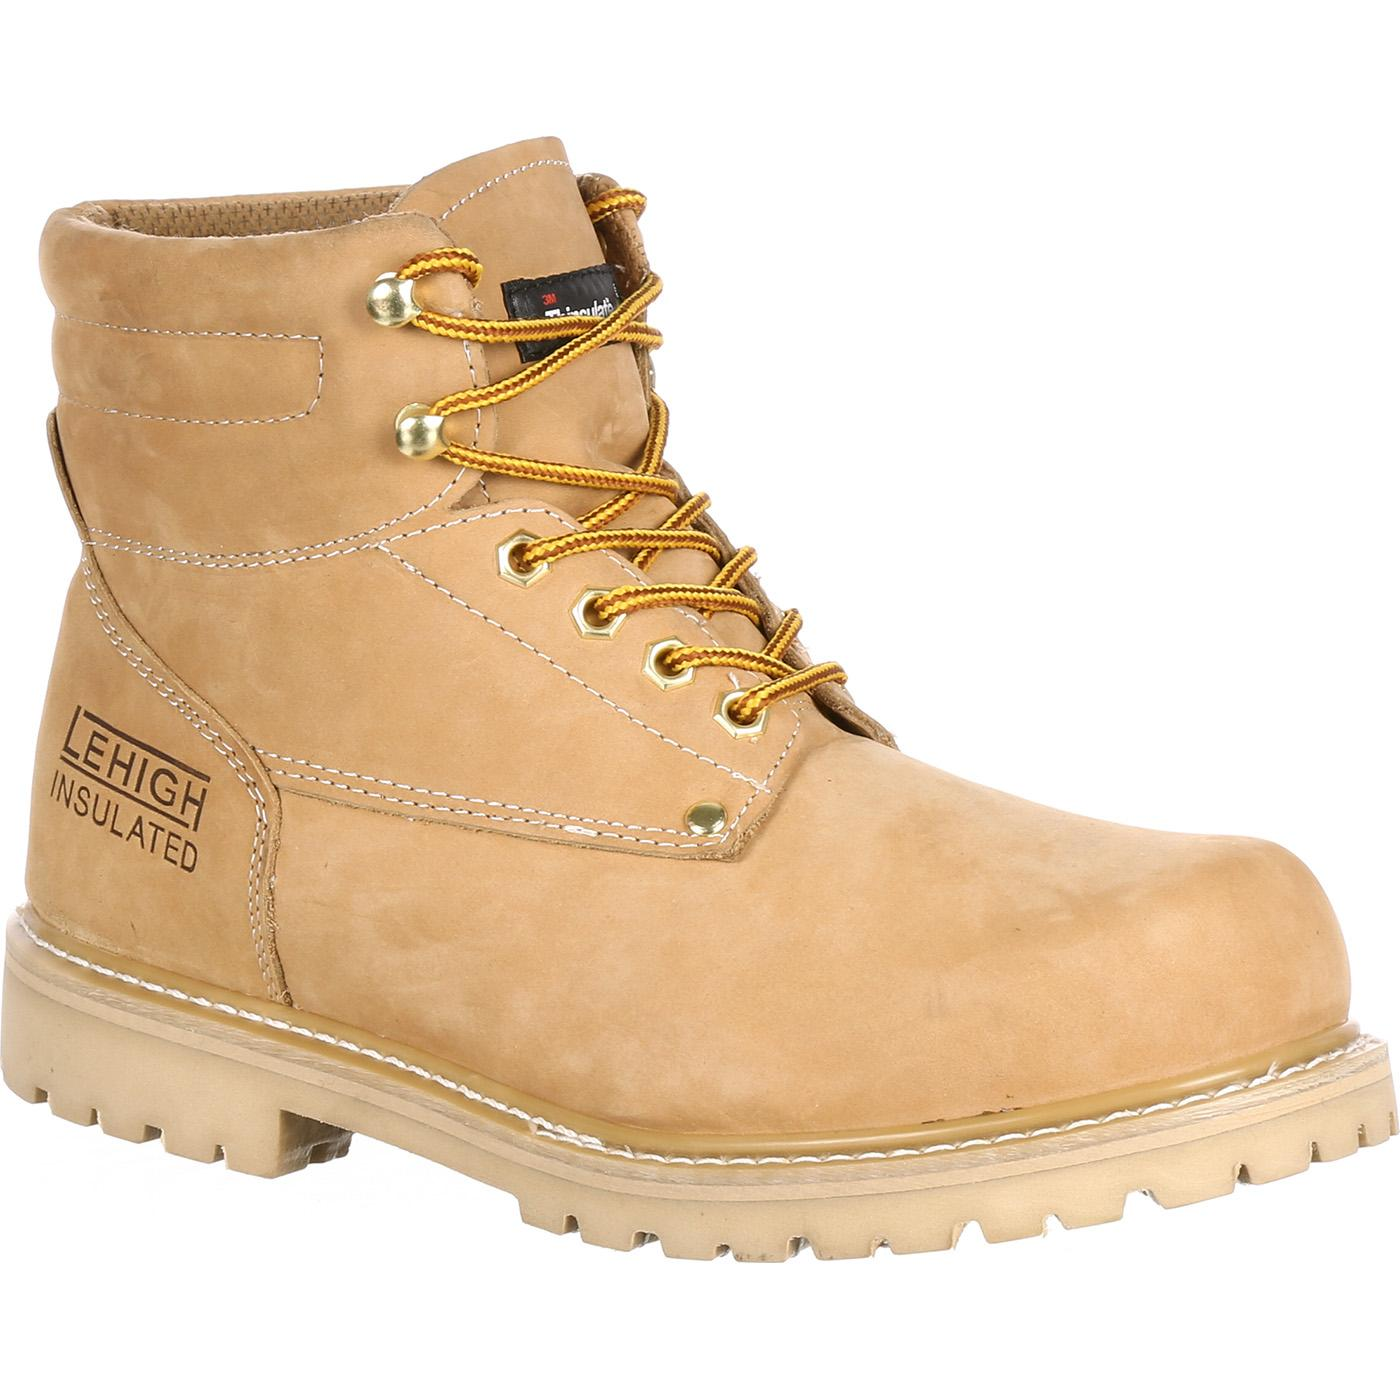 The Classic Work Boot - Steel Toe Insulated Work Boot Medallion II ...